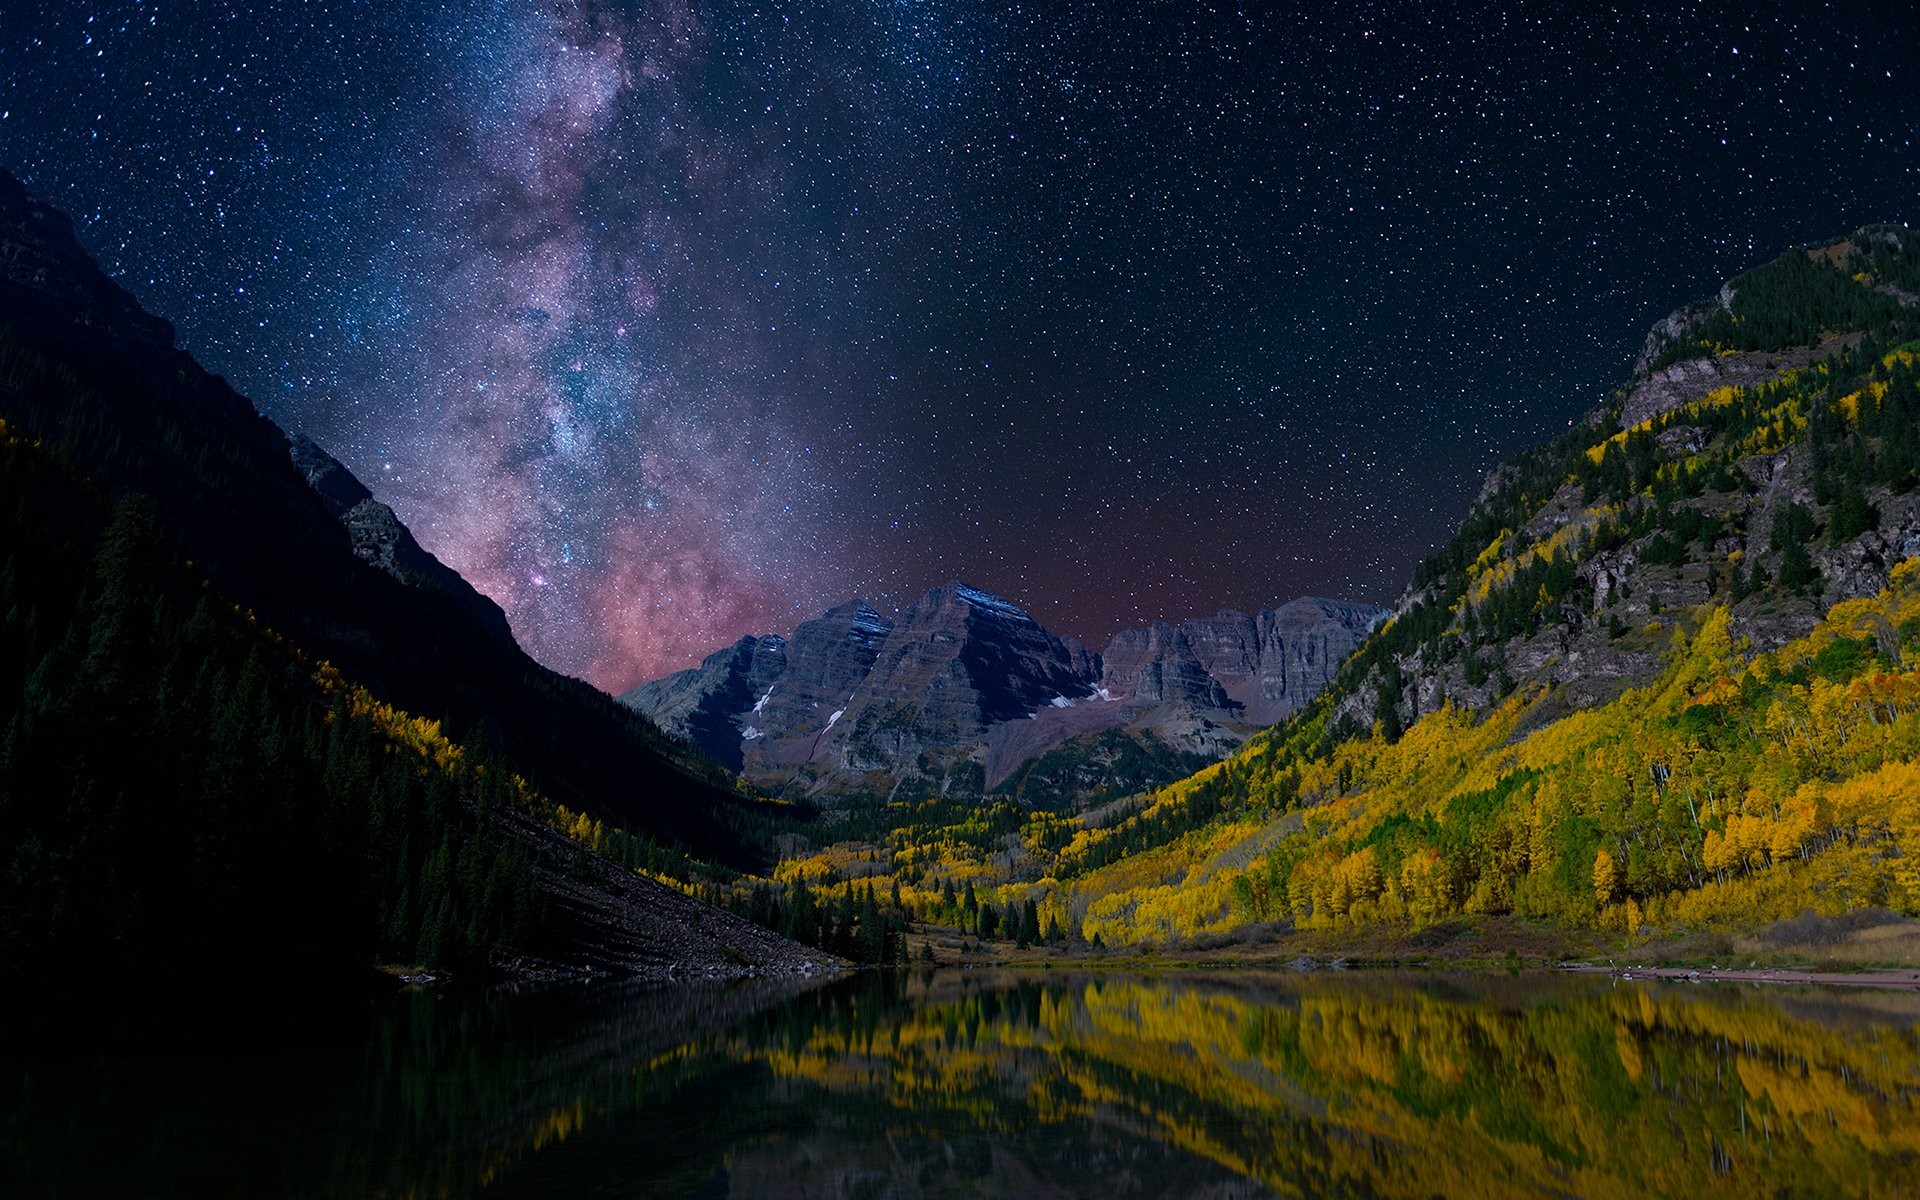 Earth – Landscape Sky Milky Way Norway Earth Mountain Valley Forest Night  Reflection Stars Starry Sky